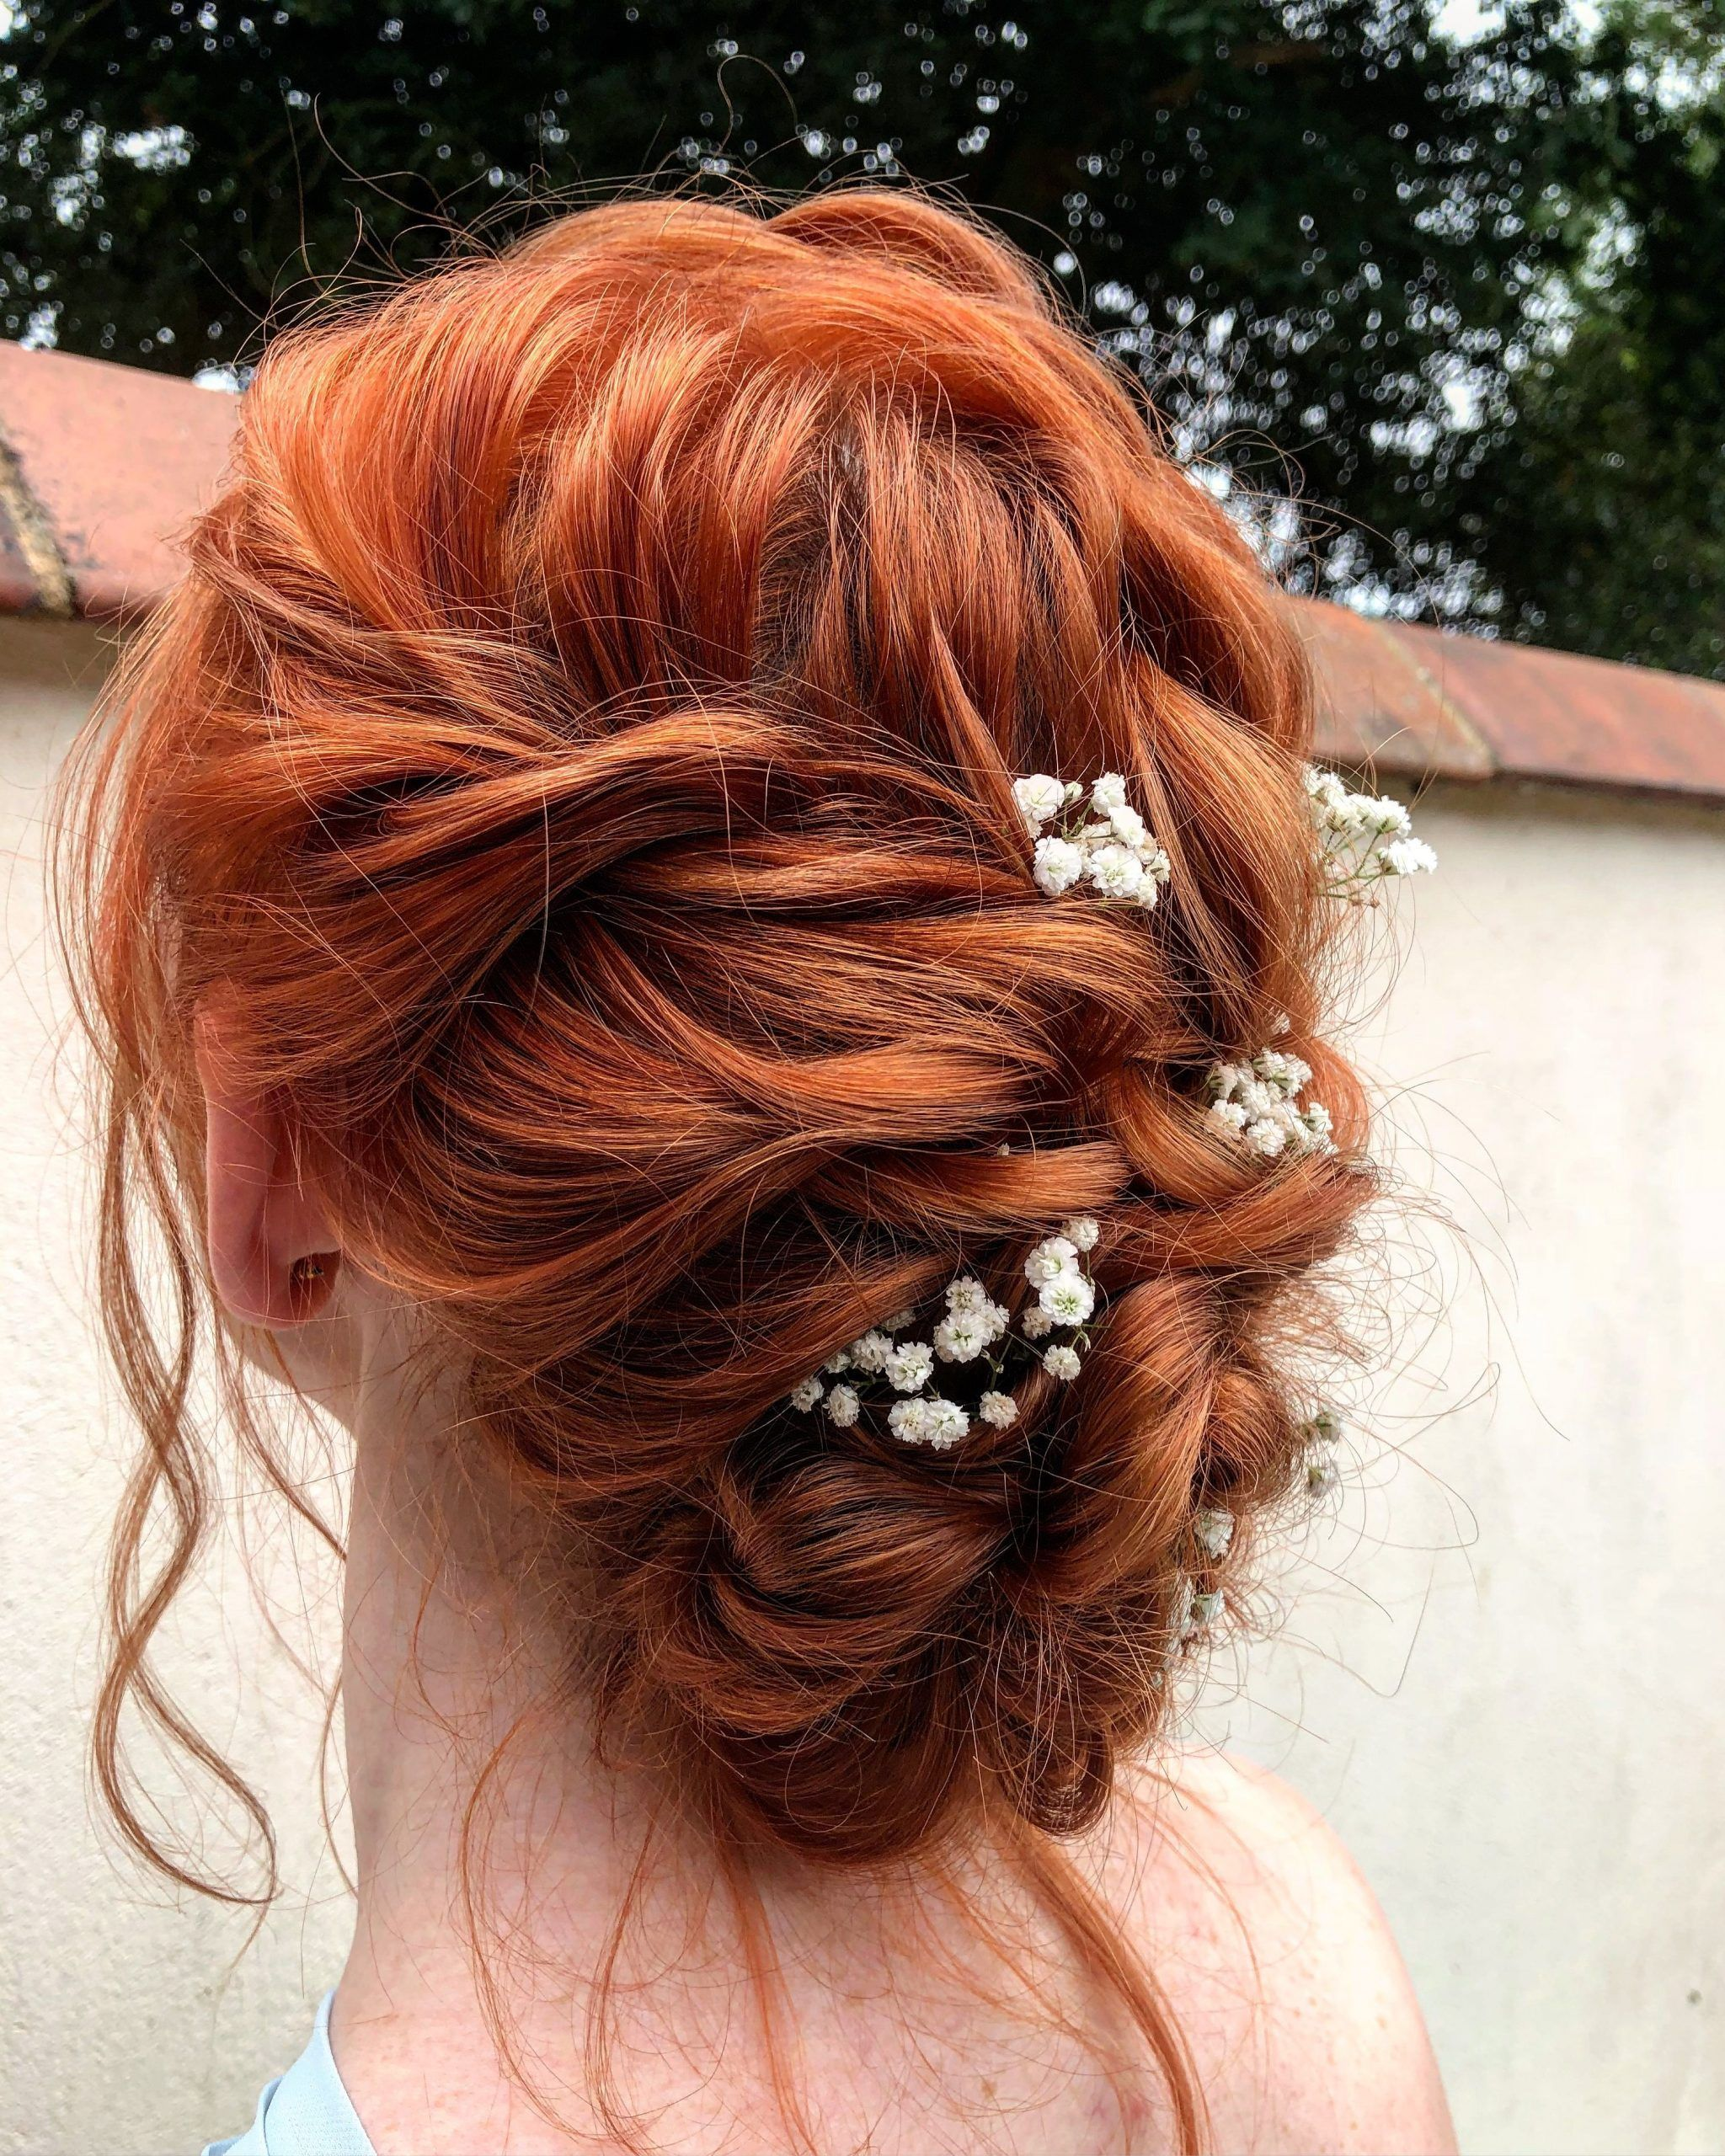 Www Theupdogirl Com Theupdogirl Updo Hairstyle Redhead Hairstyle Redhead Theupdogirl Updo Wwwtheupdogirlco In 2020 Redhead Hairstyles Red Hair Updo Hair Styles